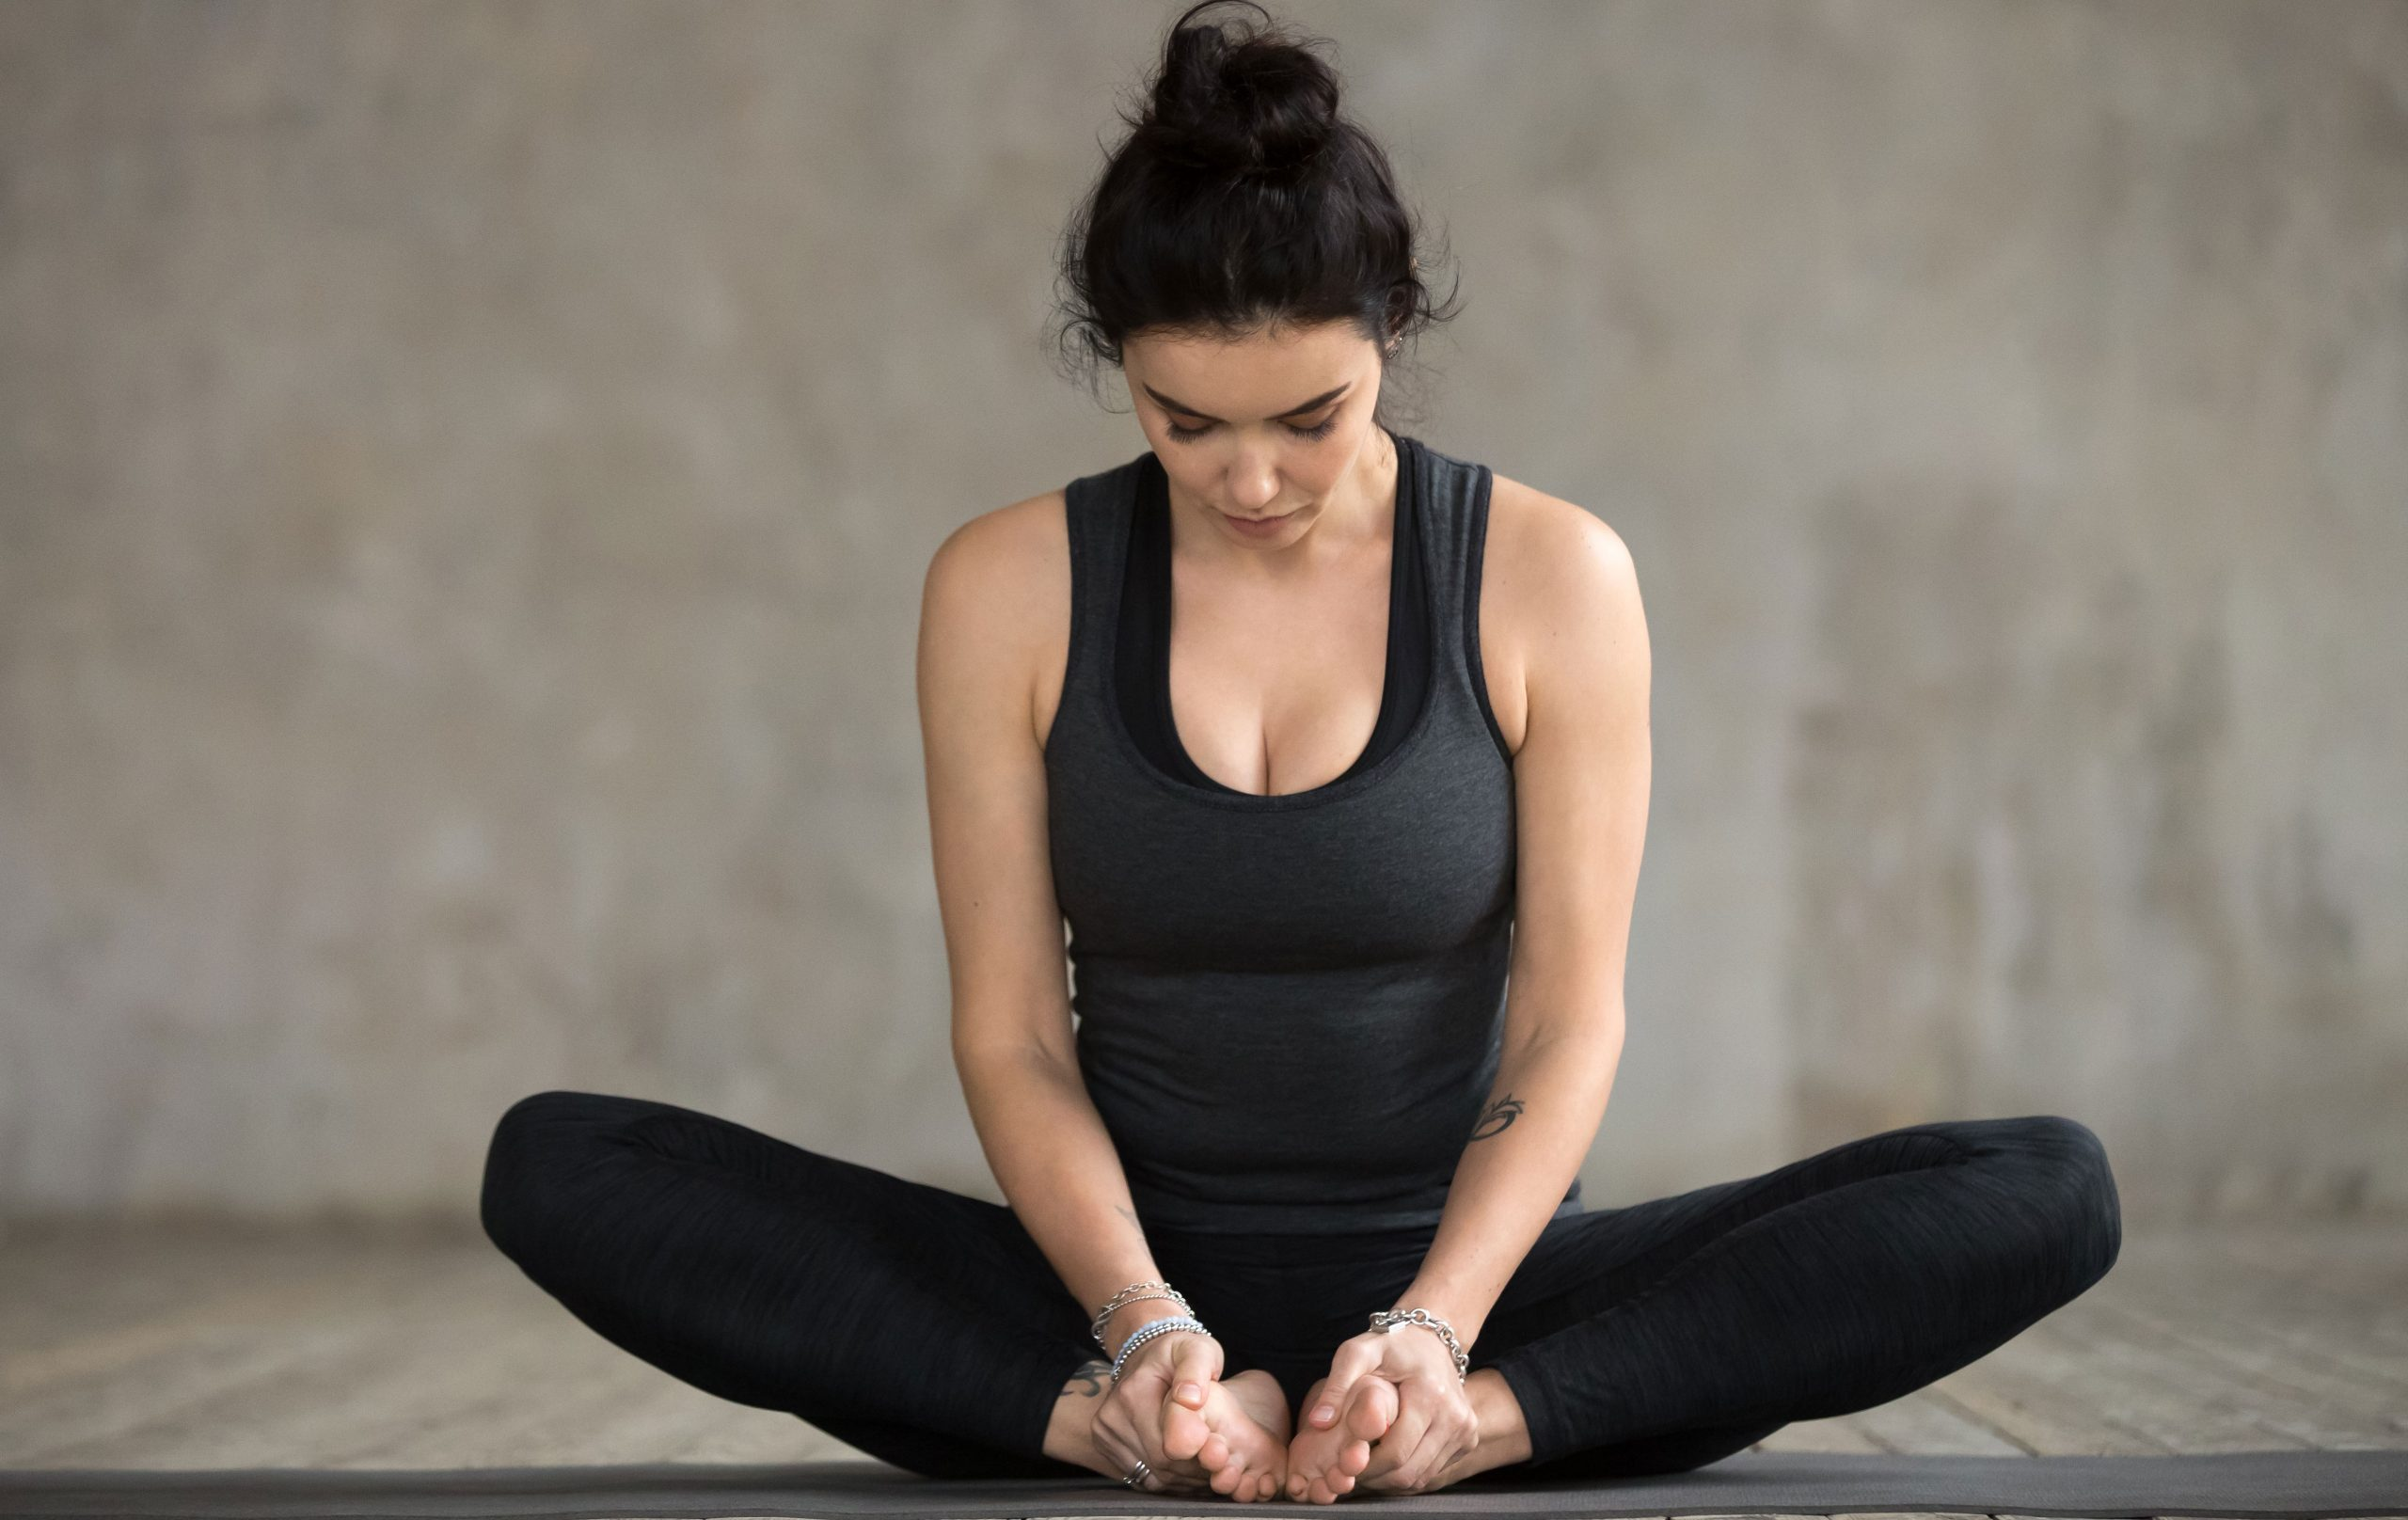 Fertility Yoga Everything You Need To Know About Fertility Yoga And How It Can Help You Conceive